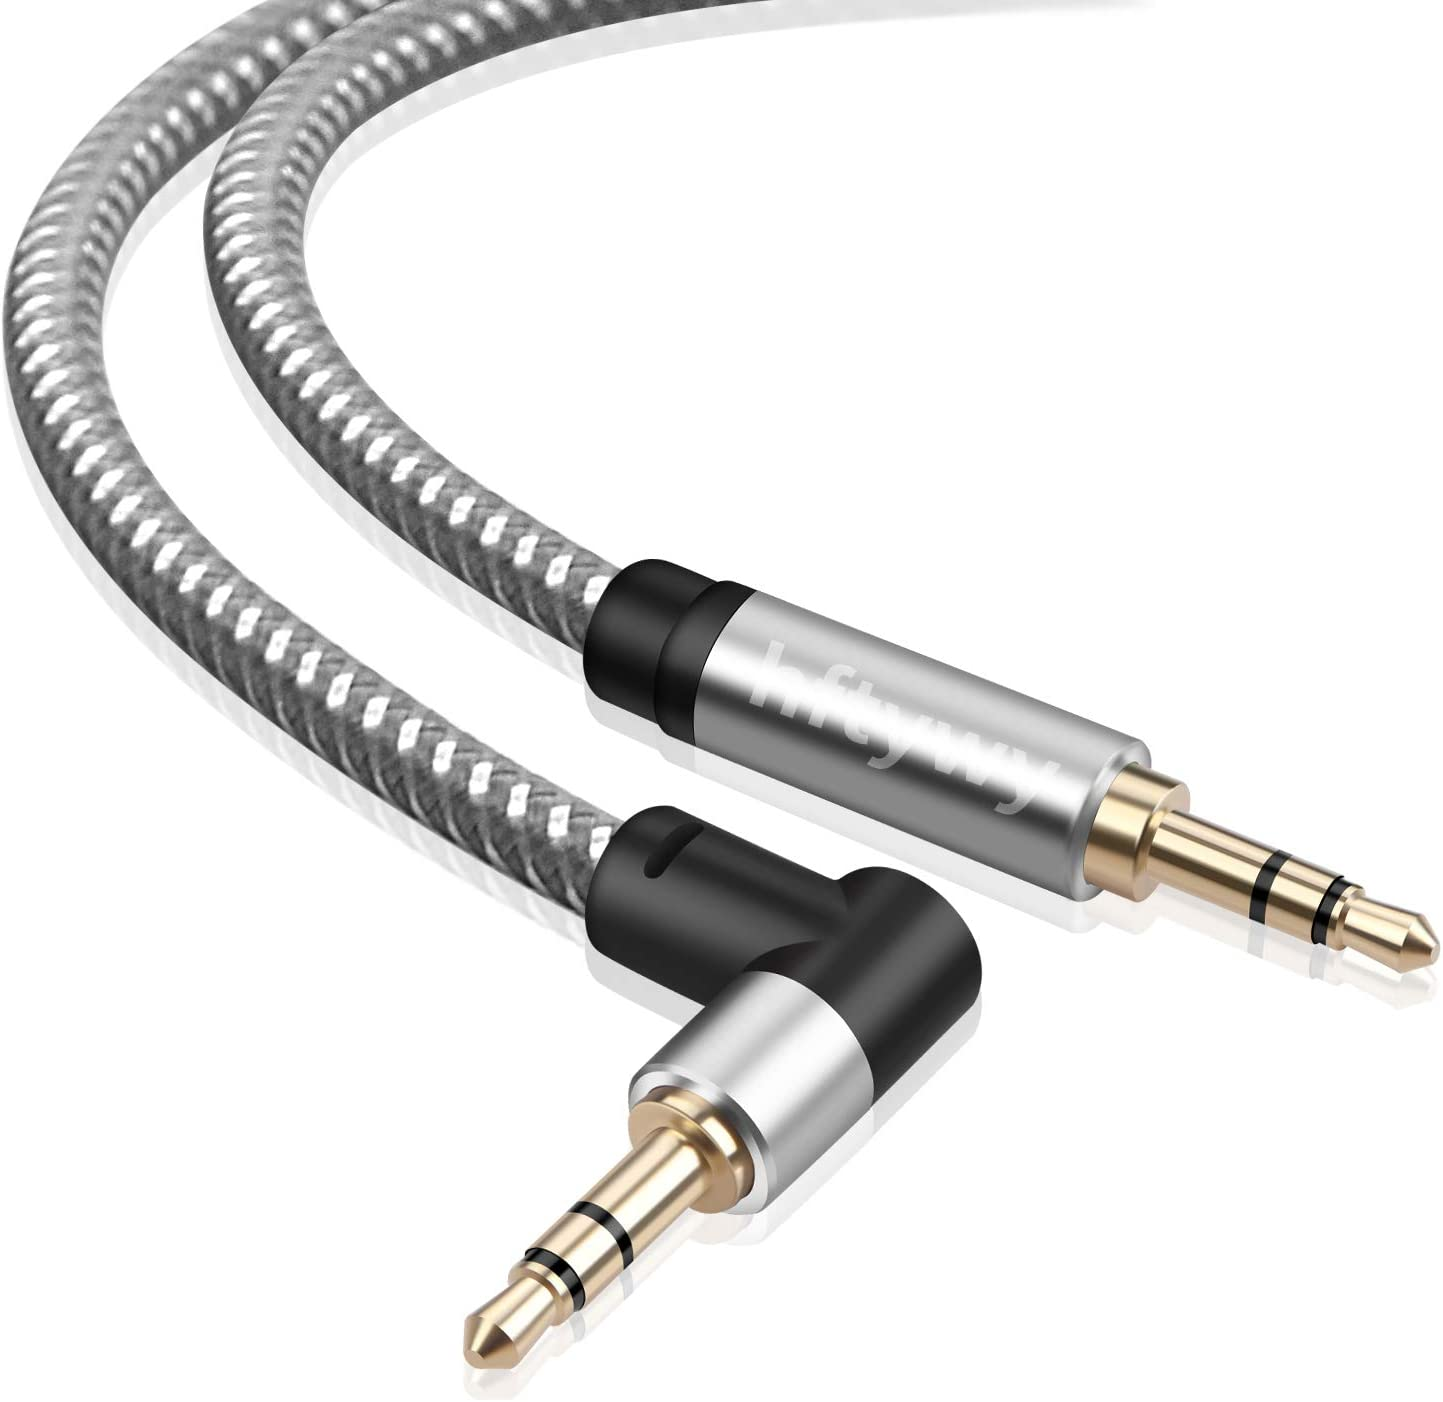 3.5mm Audio Cable 1.5 ft Male to Male AUX Cord Hftywy aux Cable,Stereo Aux Jack to Jack Cable 90 Degree Right Angle Auxiliary Cord Compatible for Beats, iPhone, iPod, iPad, Tablets, Speakers,